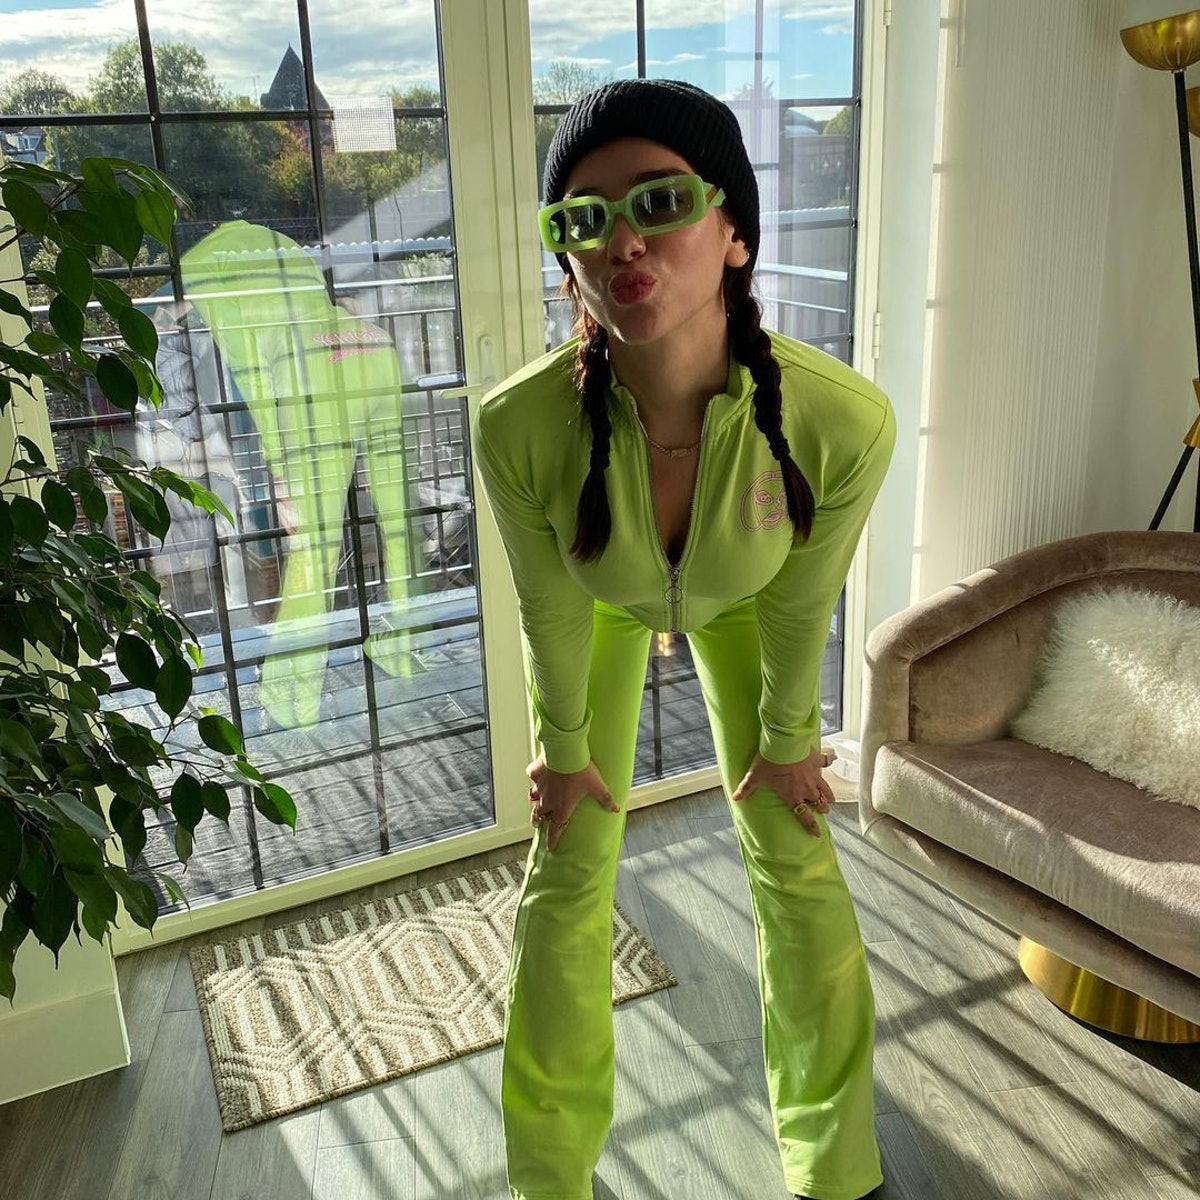 Dua Lipa wears a neon orange tracksuit adorned with '90s-style braided pigtails.